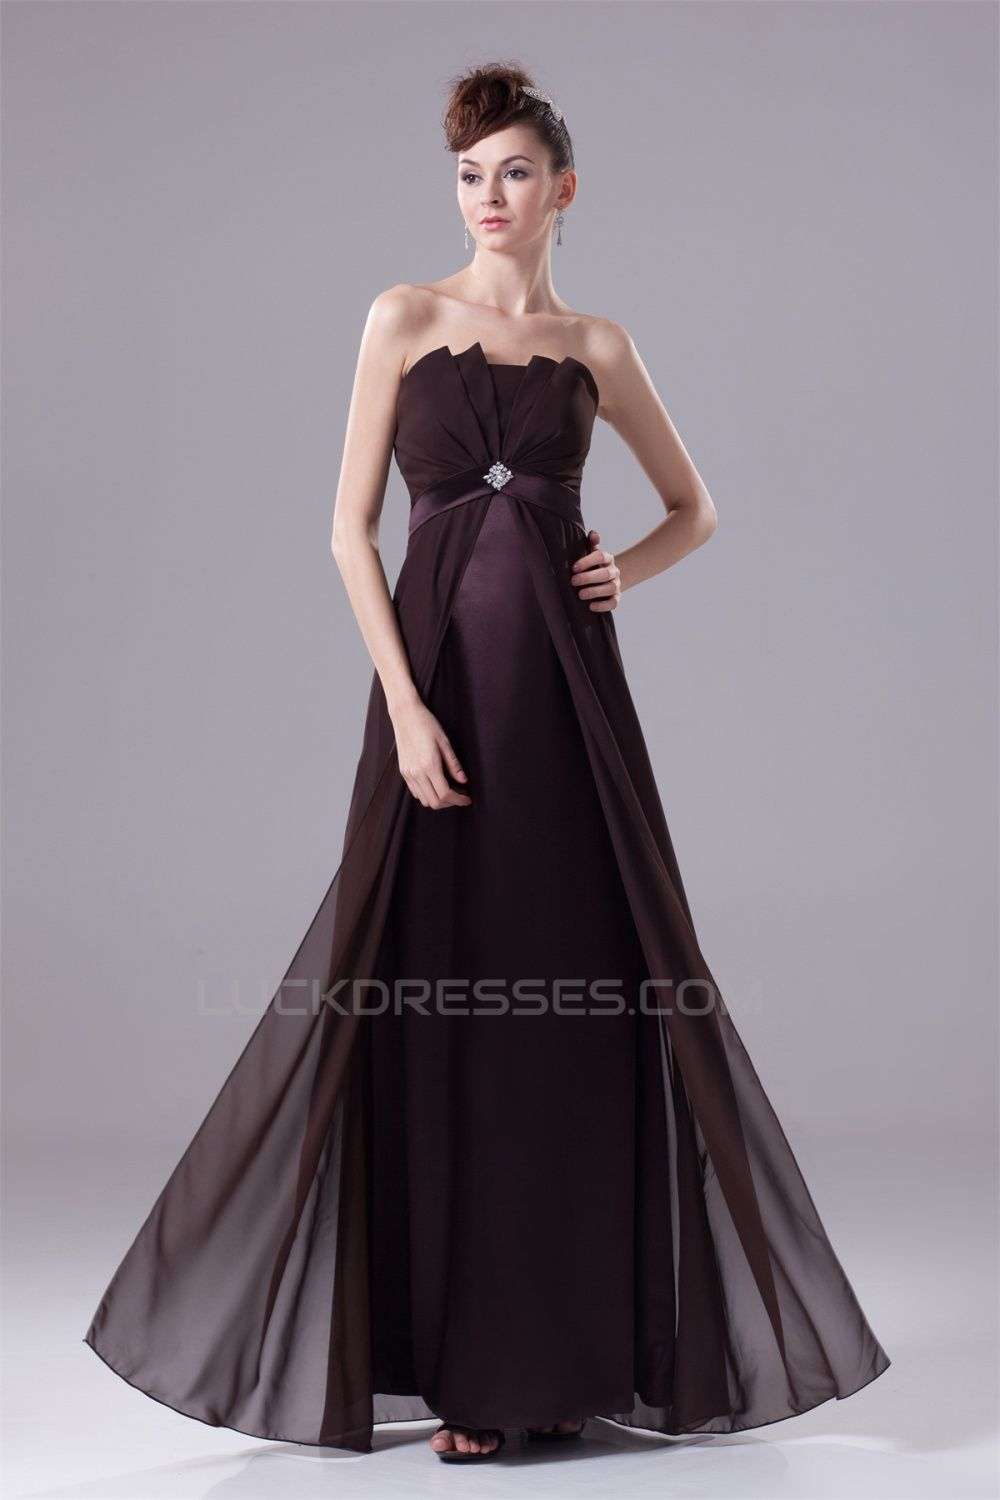 Mothers dresses for a wedding  ALine Satin Chiffon Beading Sleeveless Mother of the Bride Dresses